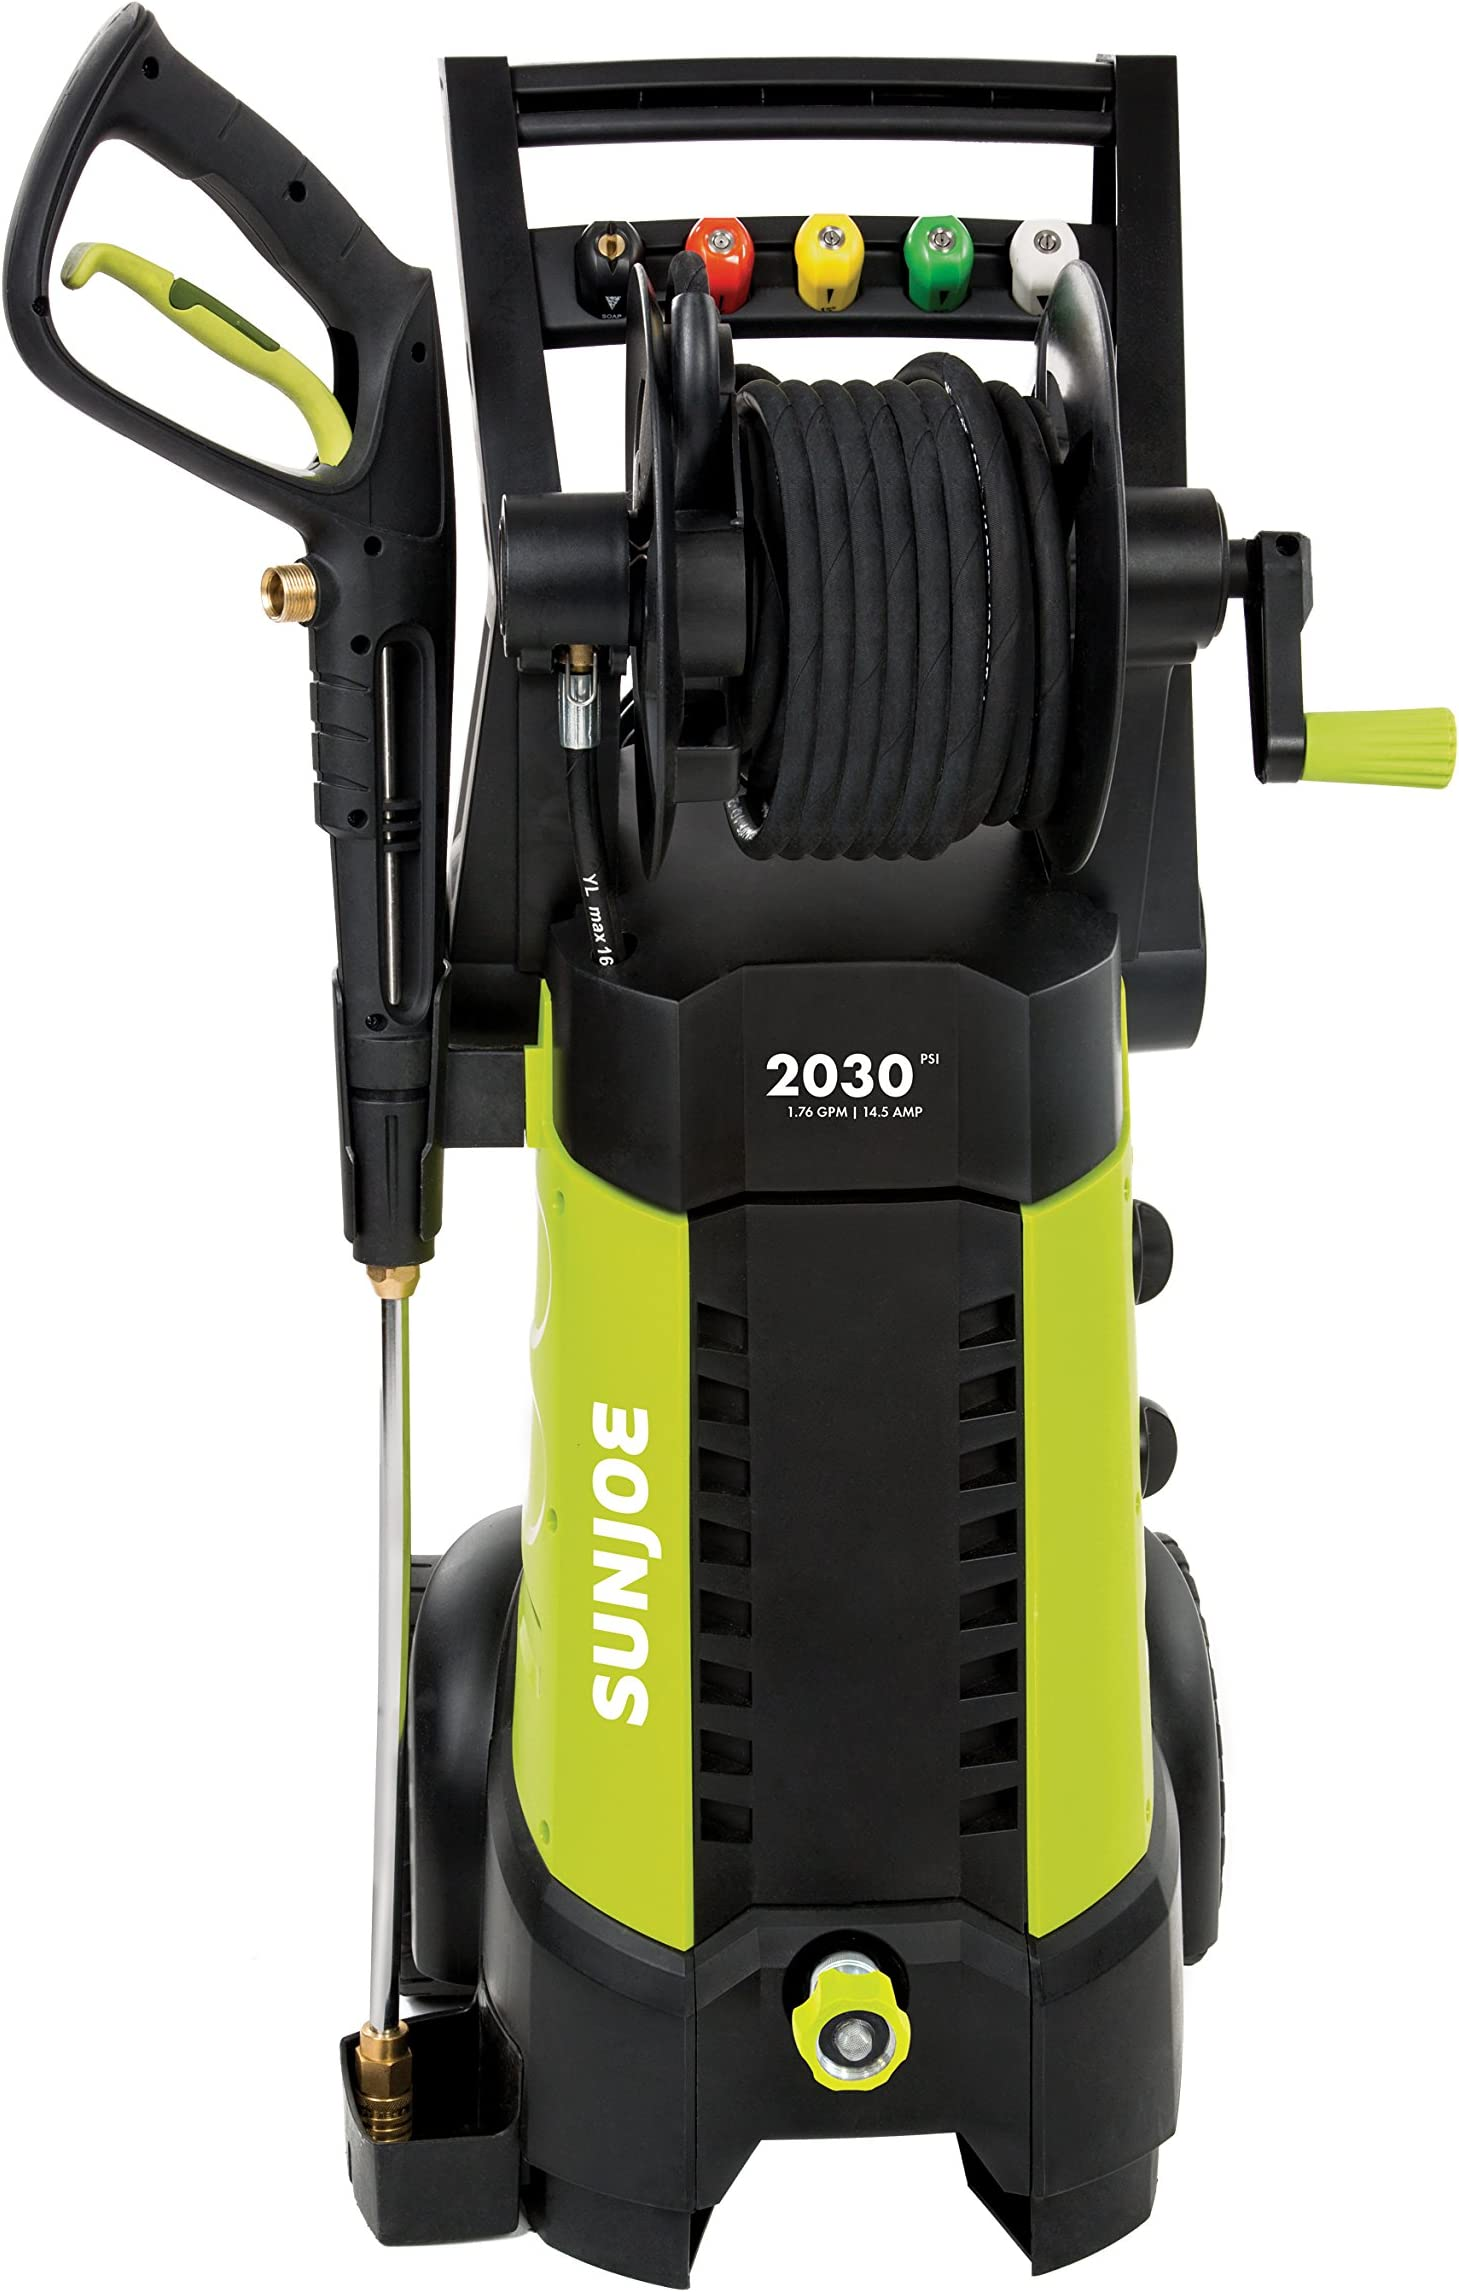 Sun Joe SPX3001 2030 PSI 1.76 GPM 14.5 AMP Electric Pressure Washer with Hose Reel  sc 1 st  Amazon.com & Pressure Washer : Pressure Washers : Patio Lawn u0026 Garden : Amazon.com